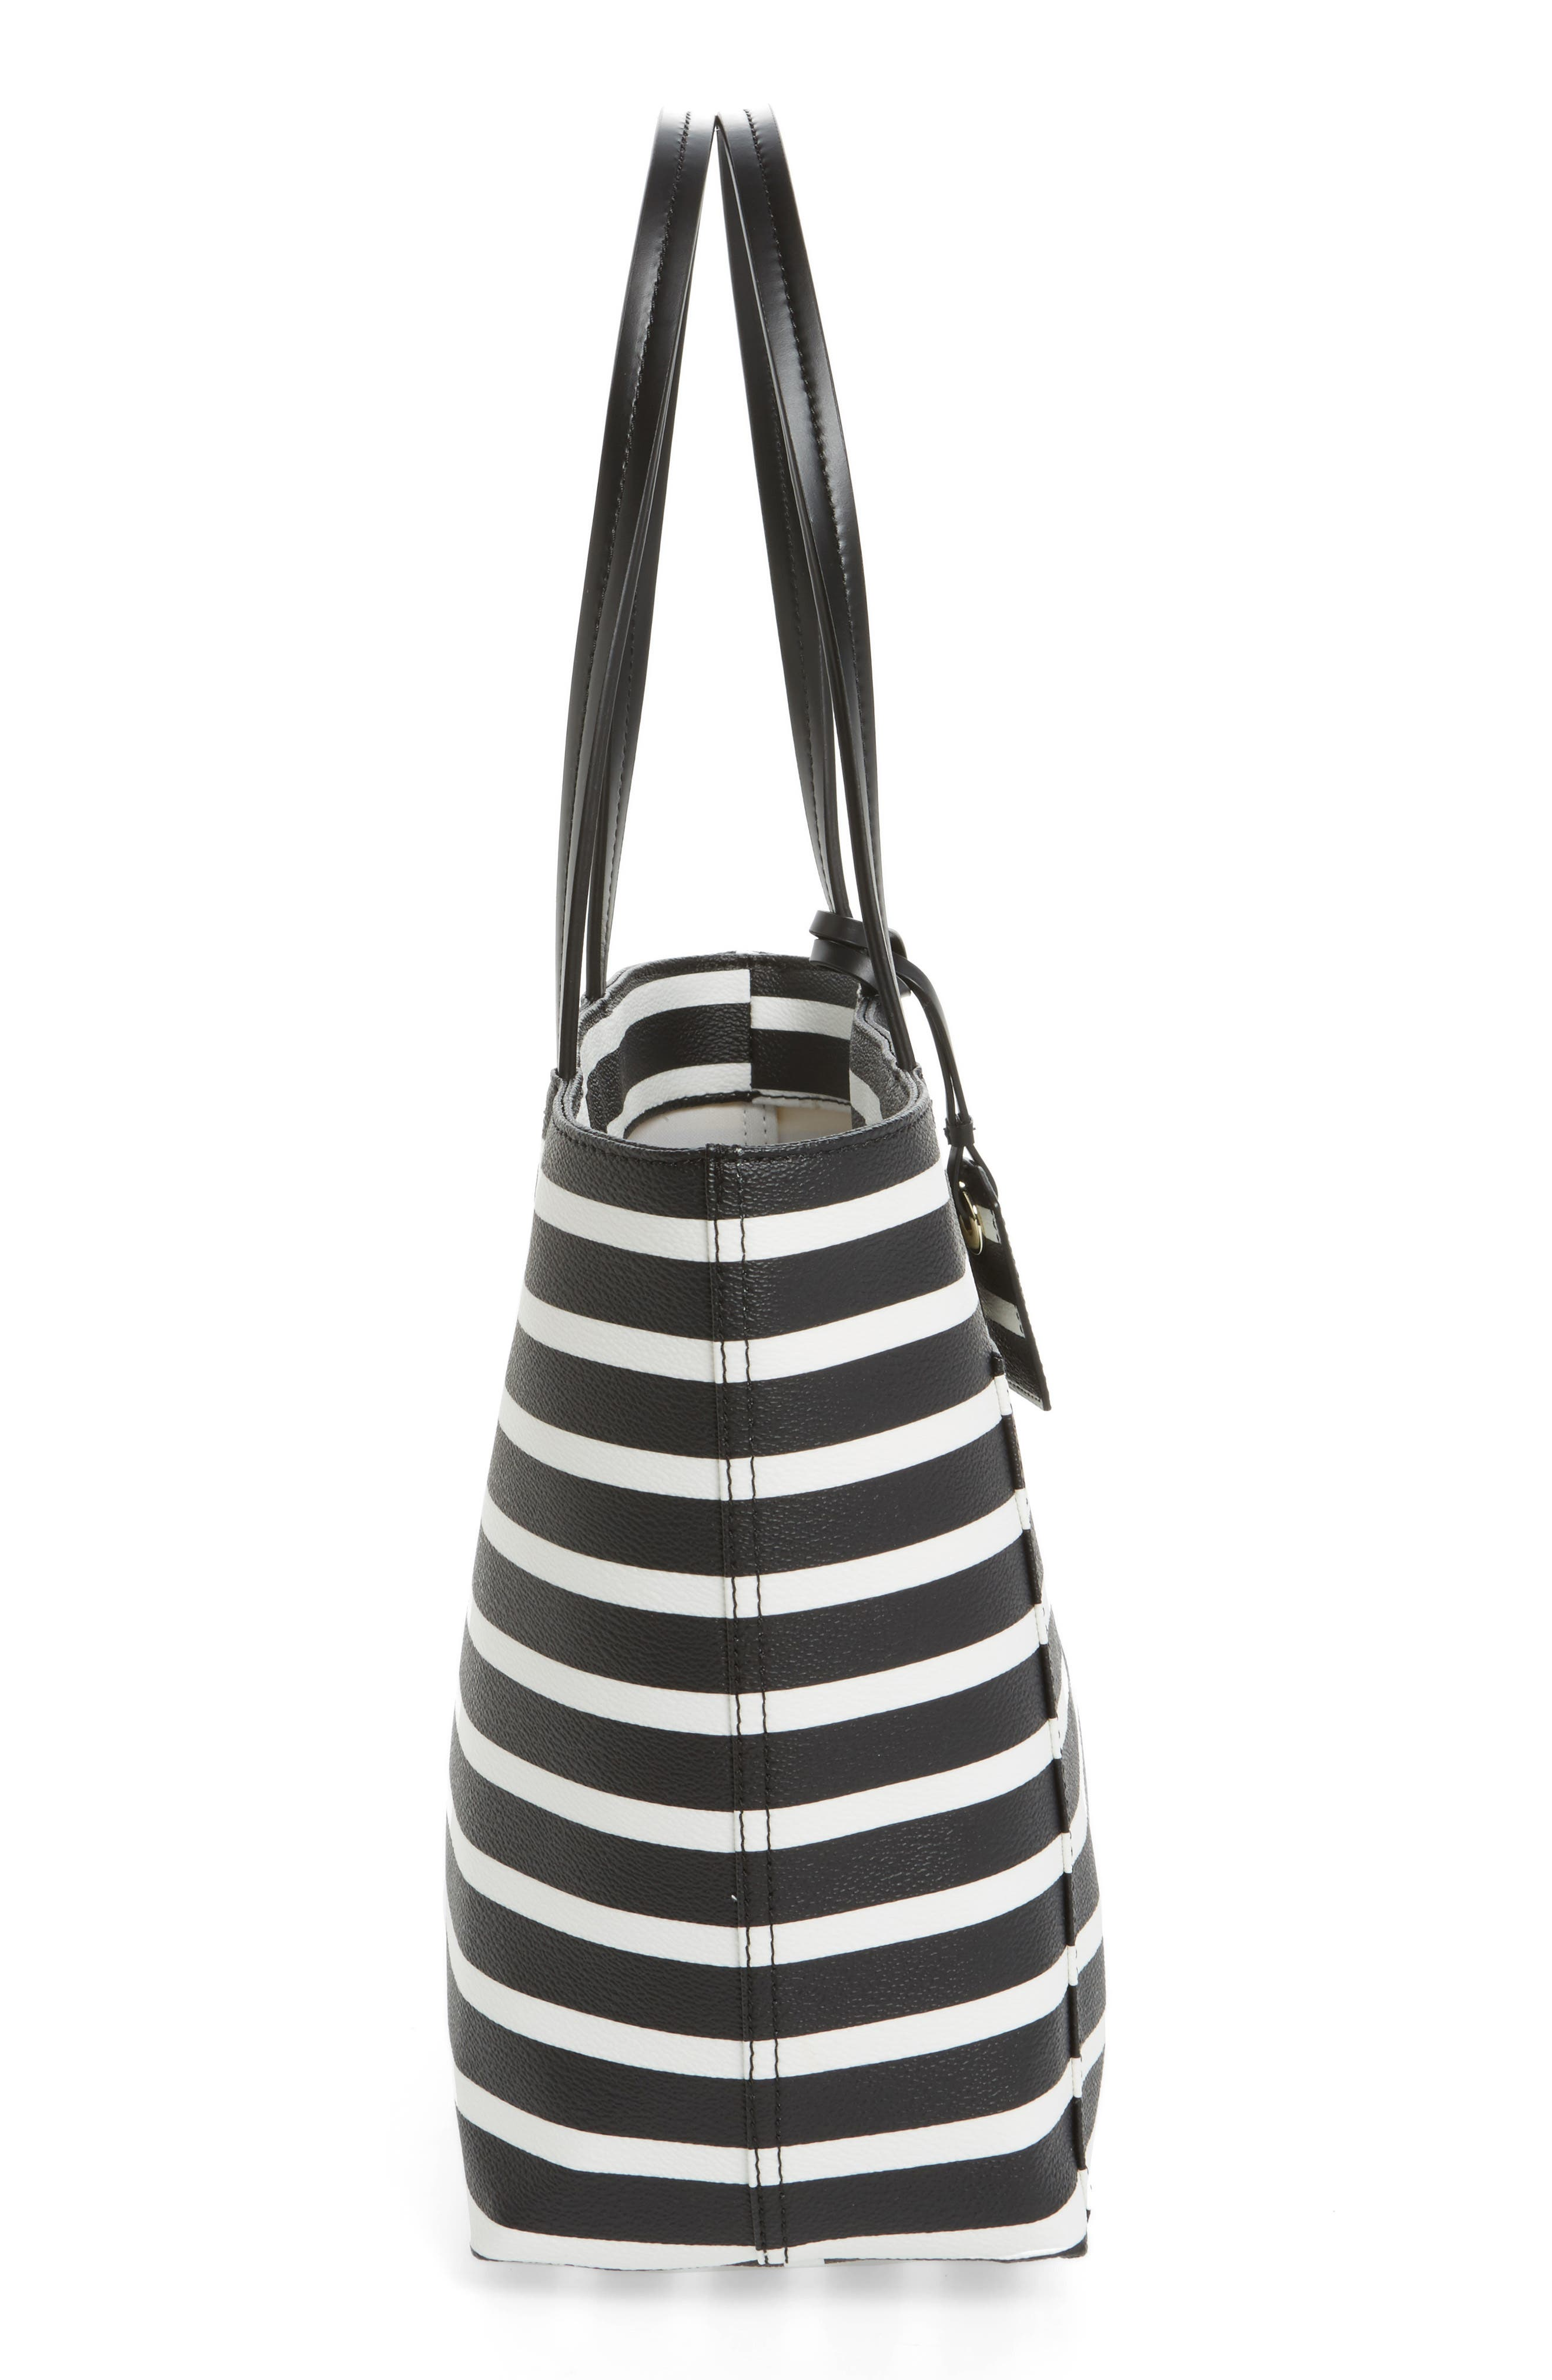 hyde lane - small riley faux leather tote,                             Alternate thumbnail 3, color,                             Black/ Off White